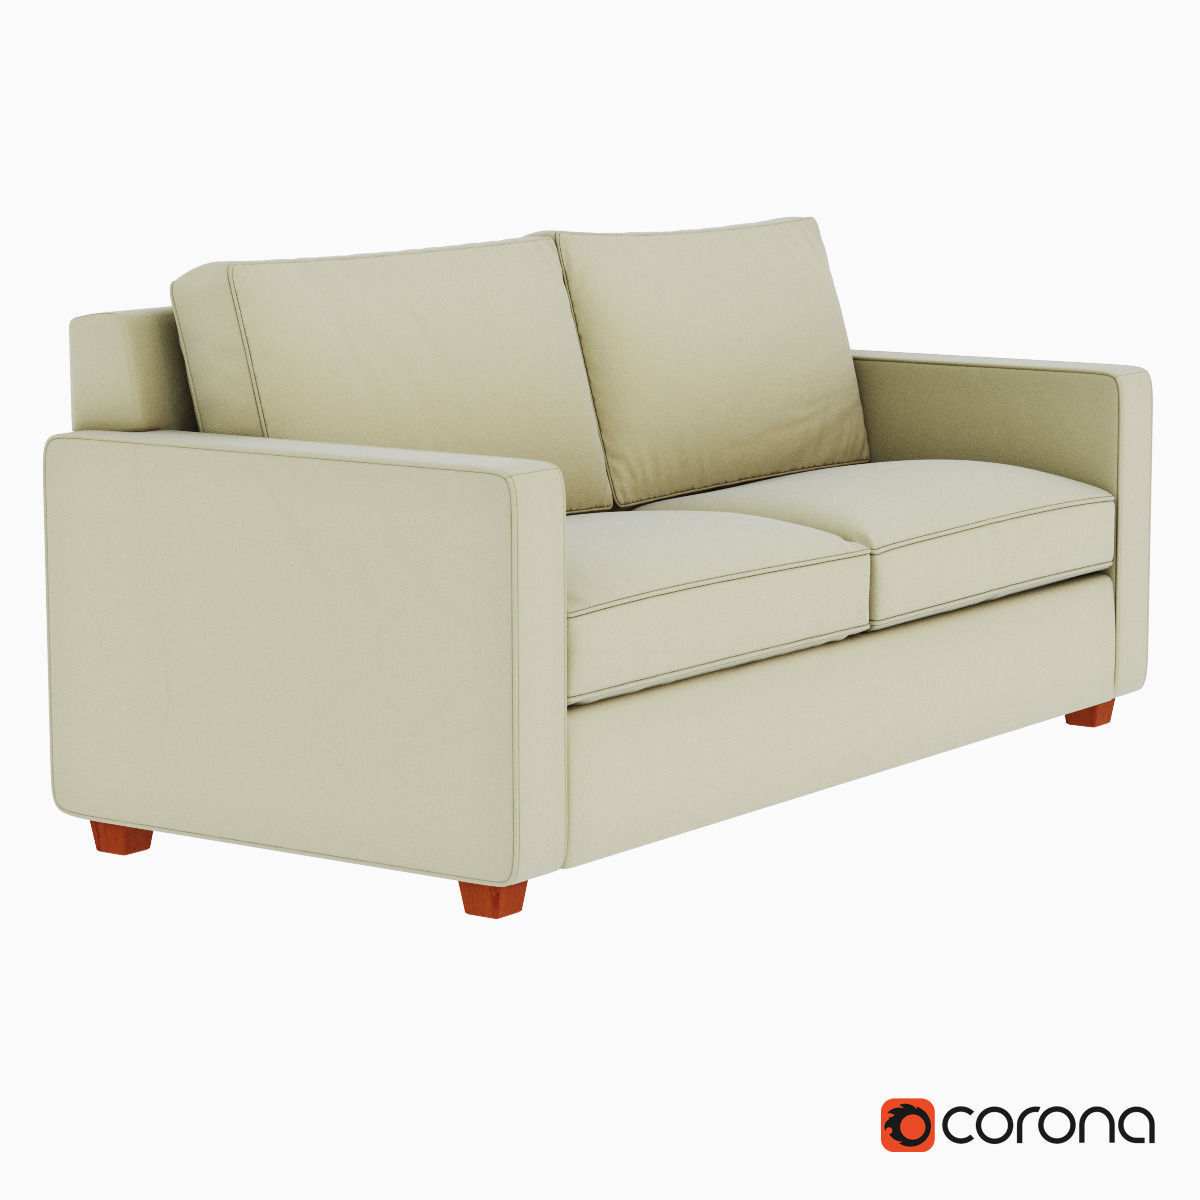 Jackson sofa west elm reviews infosofaco for West elm sectional sofa reviews